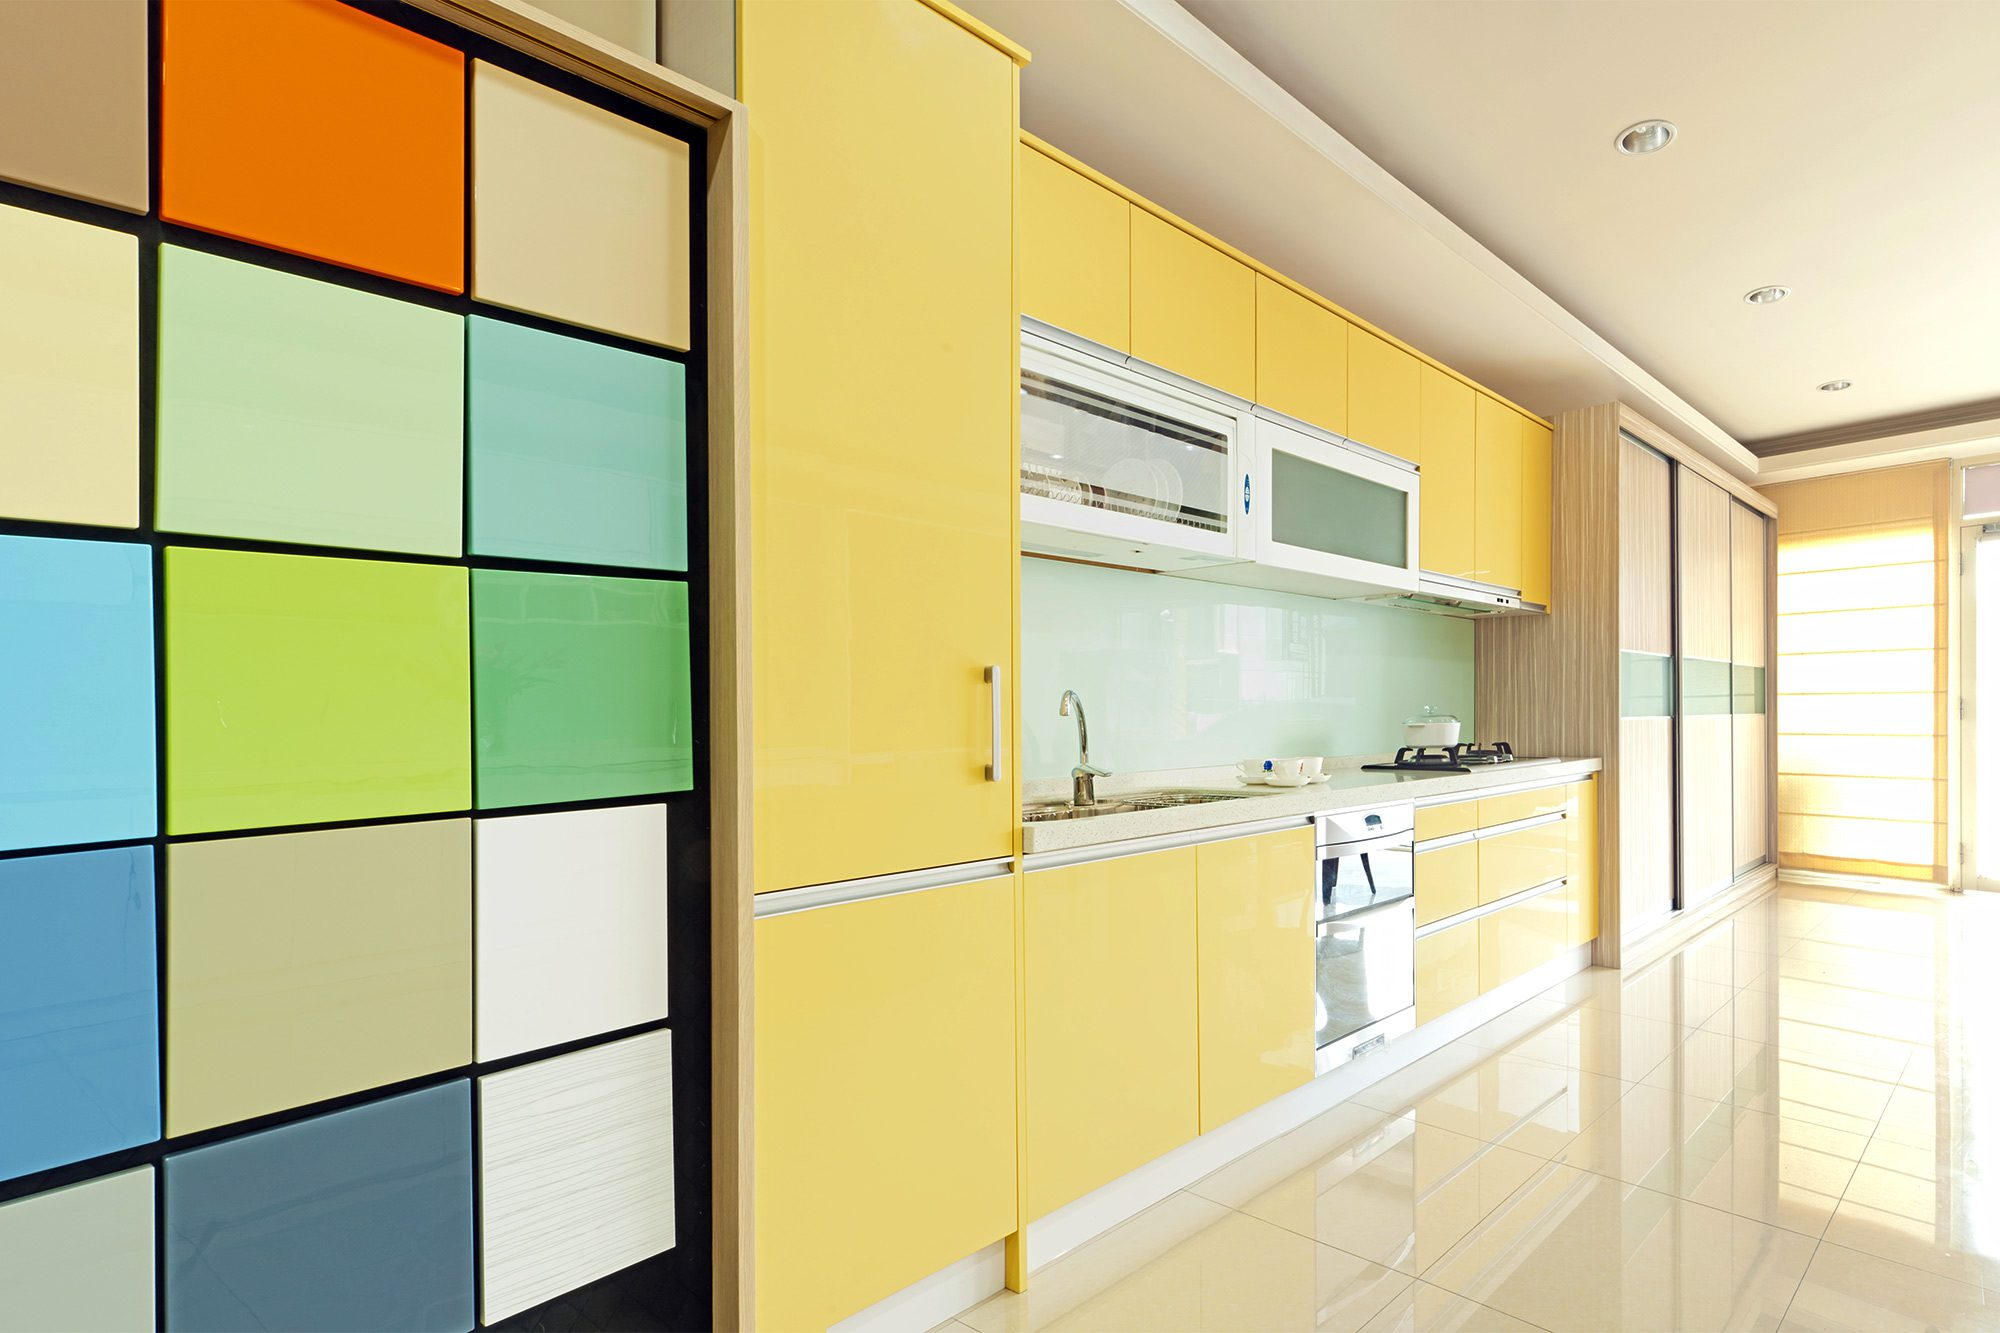 Kitchen Color Design Pictures Never Mind The Stainless Steel Let S Put Some Color Back In The